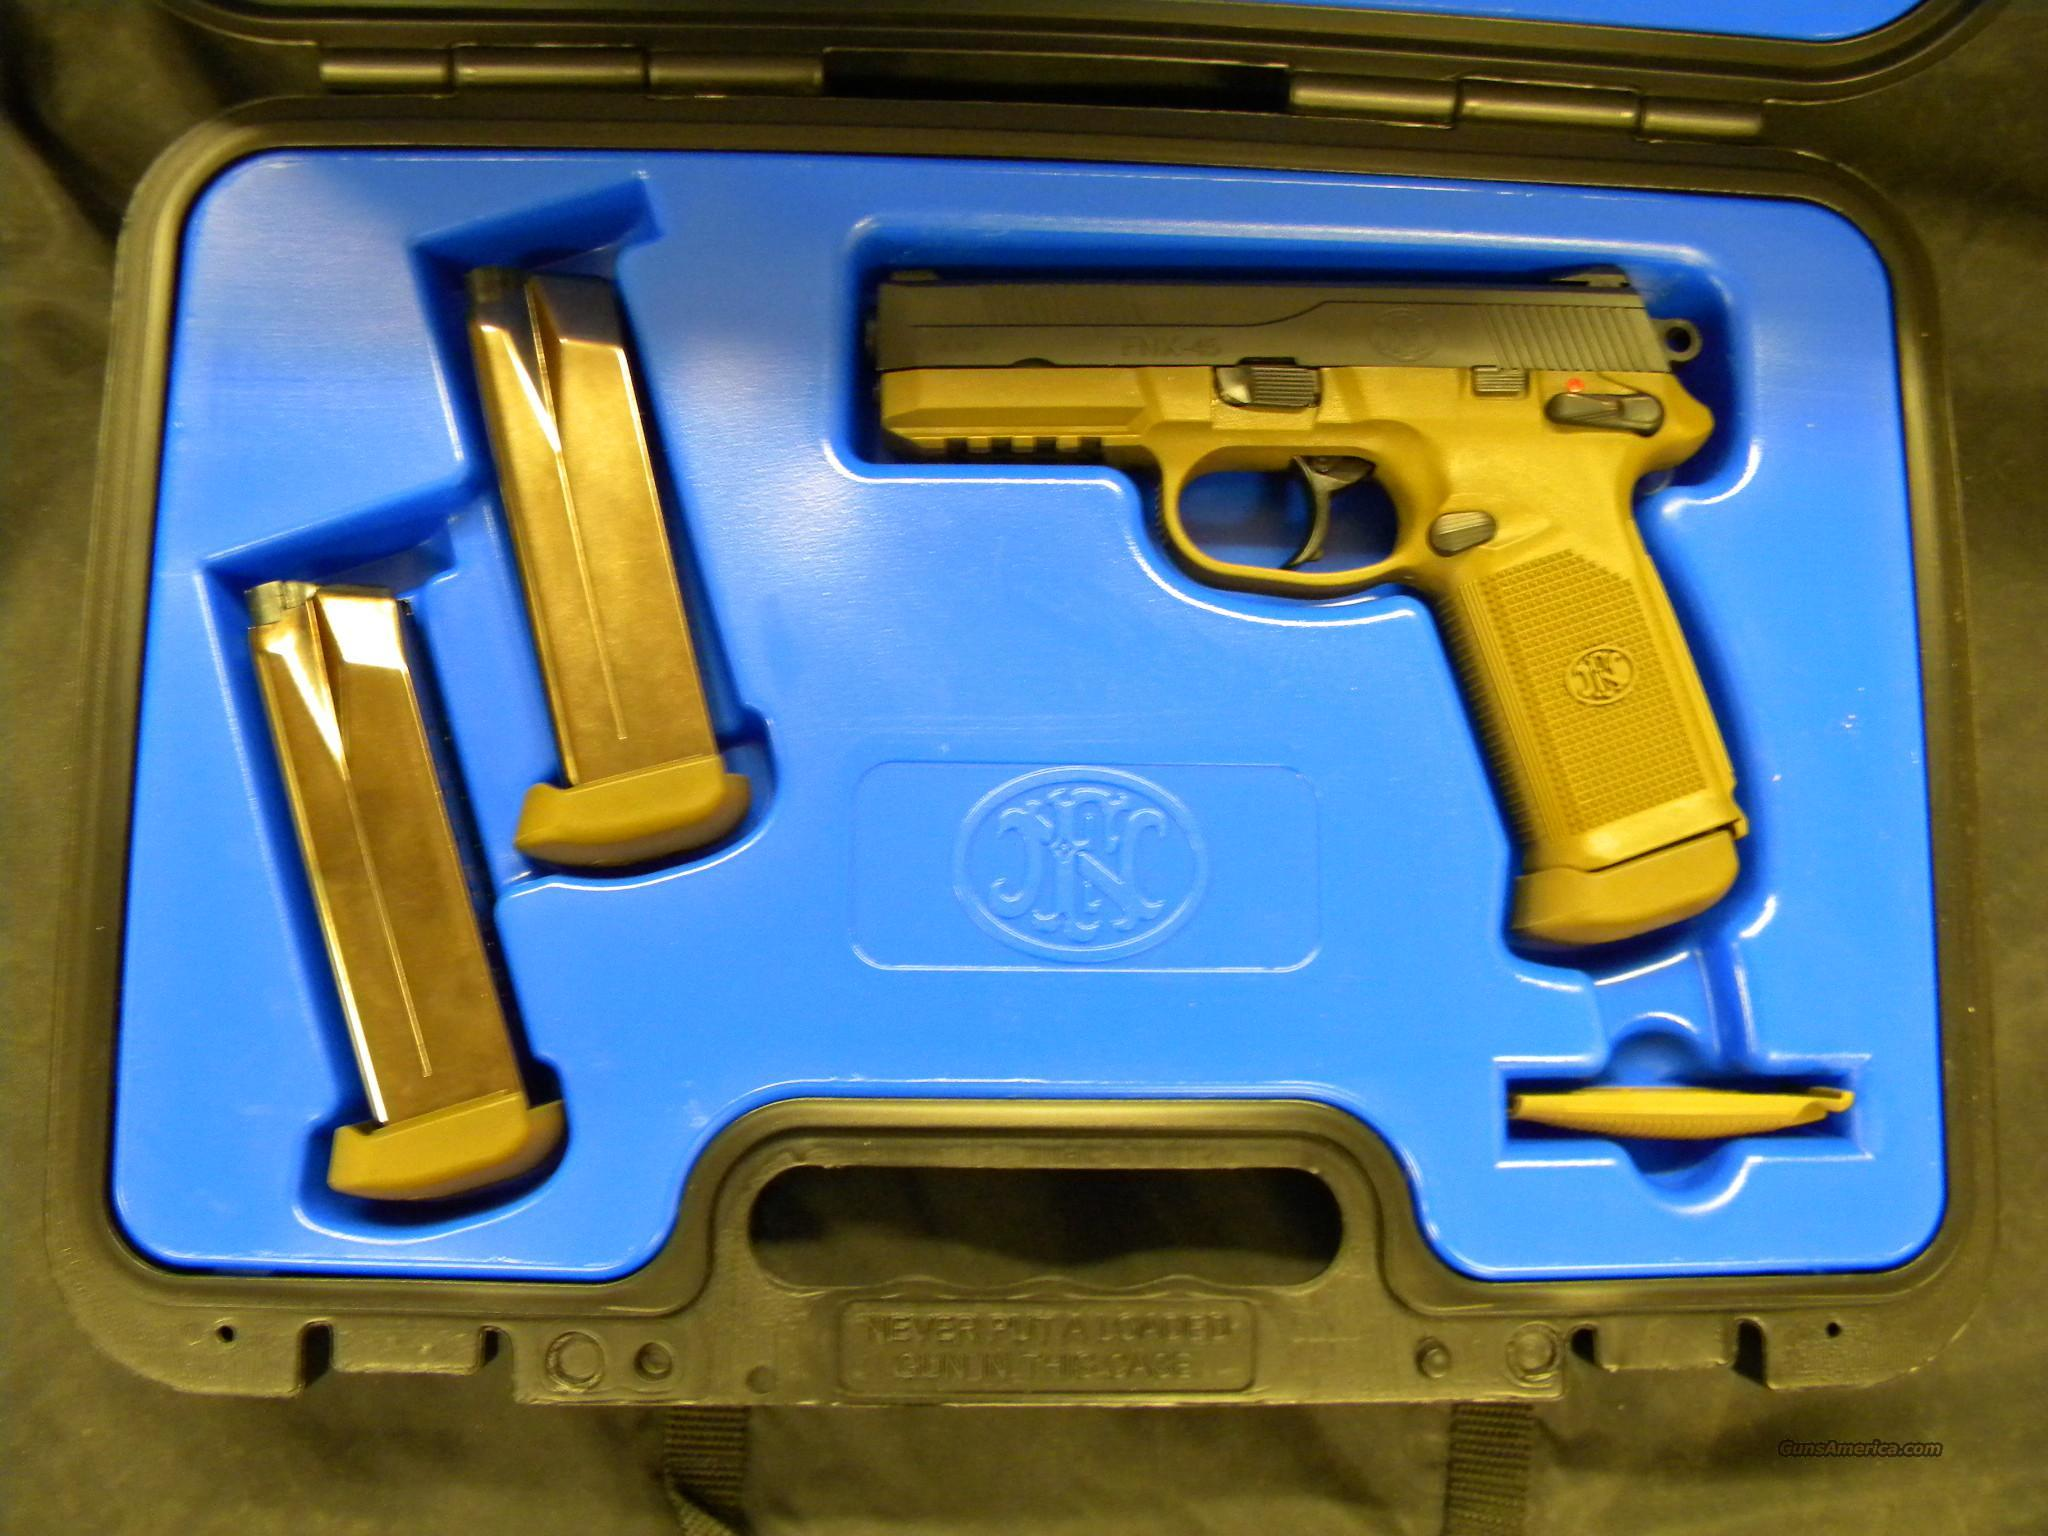 FNH USA FNX-45 Flat Dark Earth .45ACP  Guns > Pistols > FNH - Fabrique Nationale (FN) Pistols > FNP